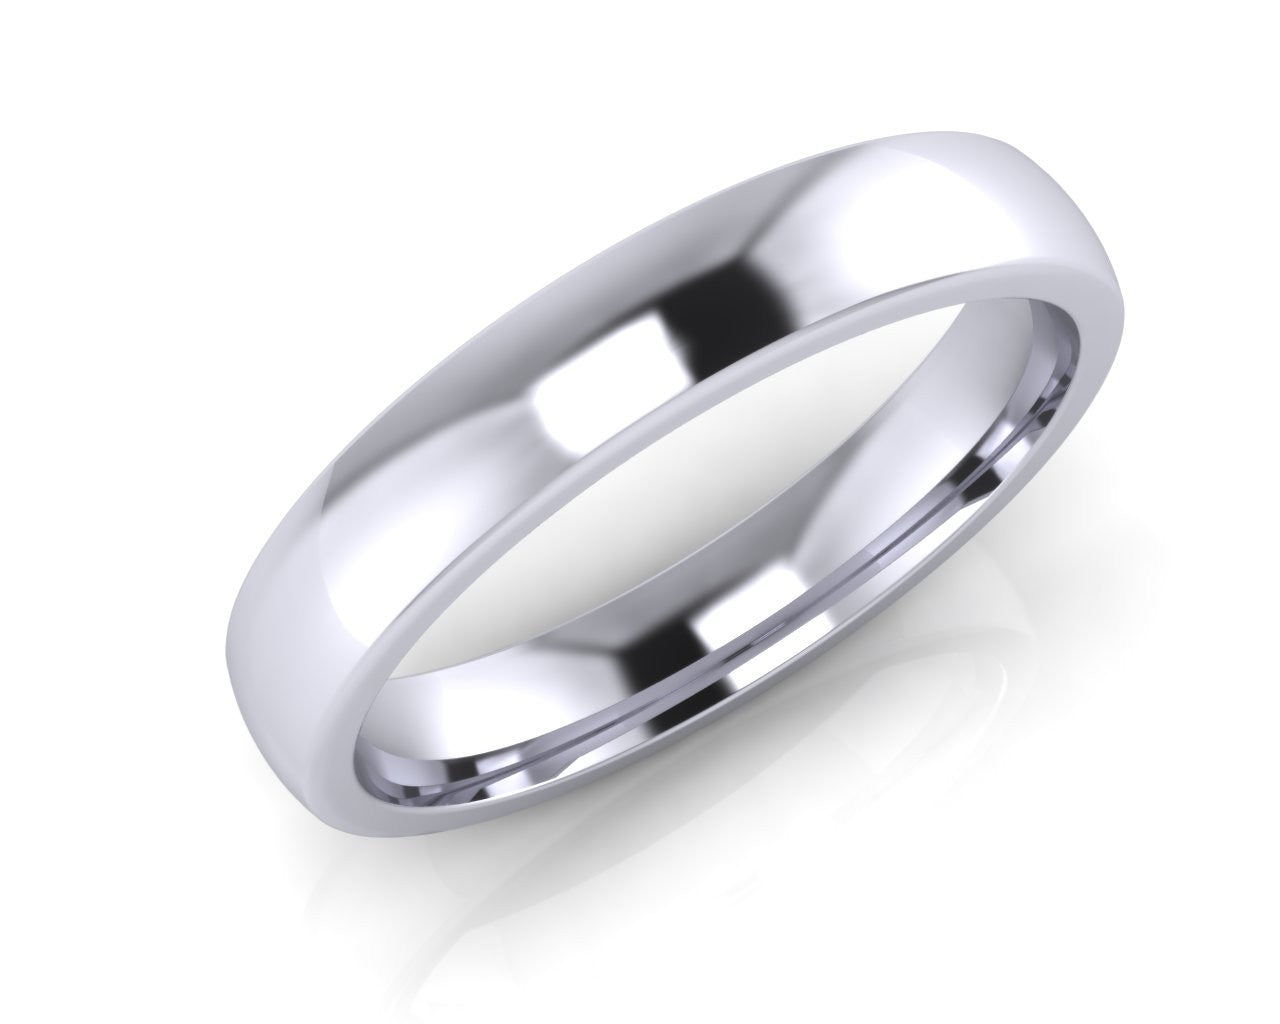 Platinum Midi-Ellipse Wedding Ring 4.0mm Size T - all ring sizes available